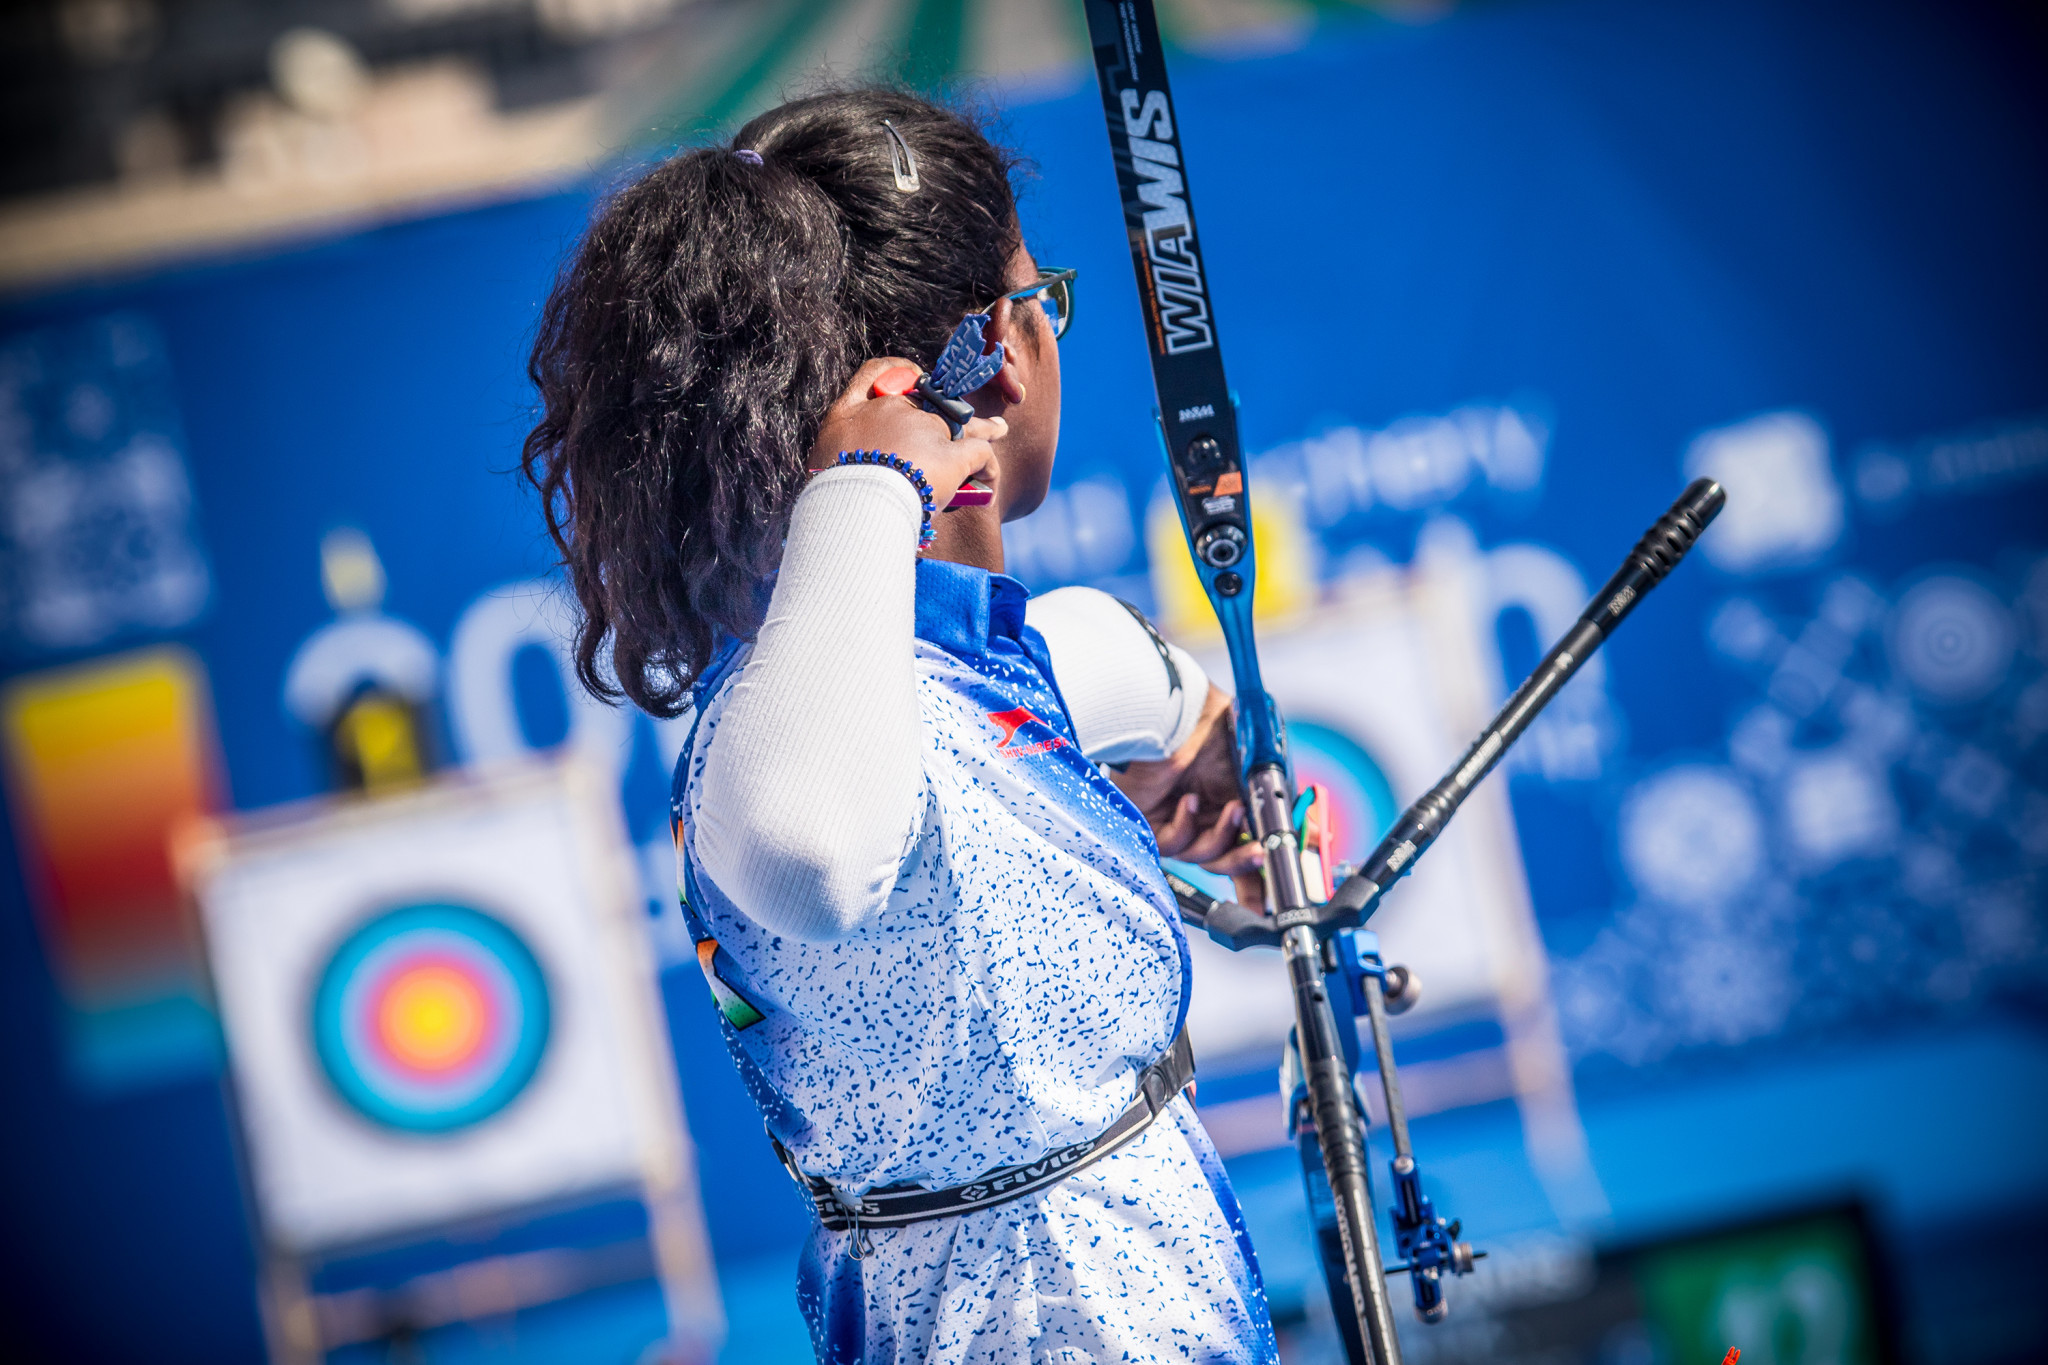 The World Archery Youth Championships is being held in Wrocław in Poland, after the last edition was held in the Spanish capital Madrid in 2019 ©Getty Images